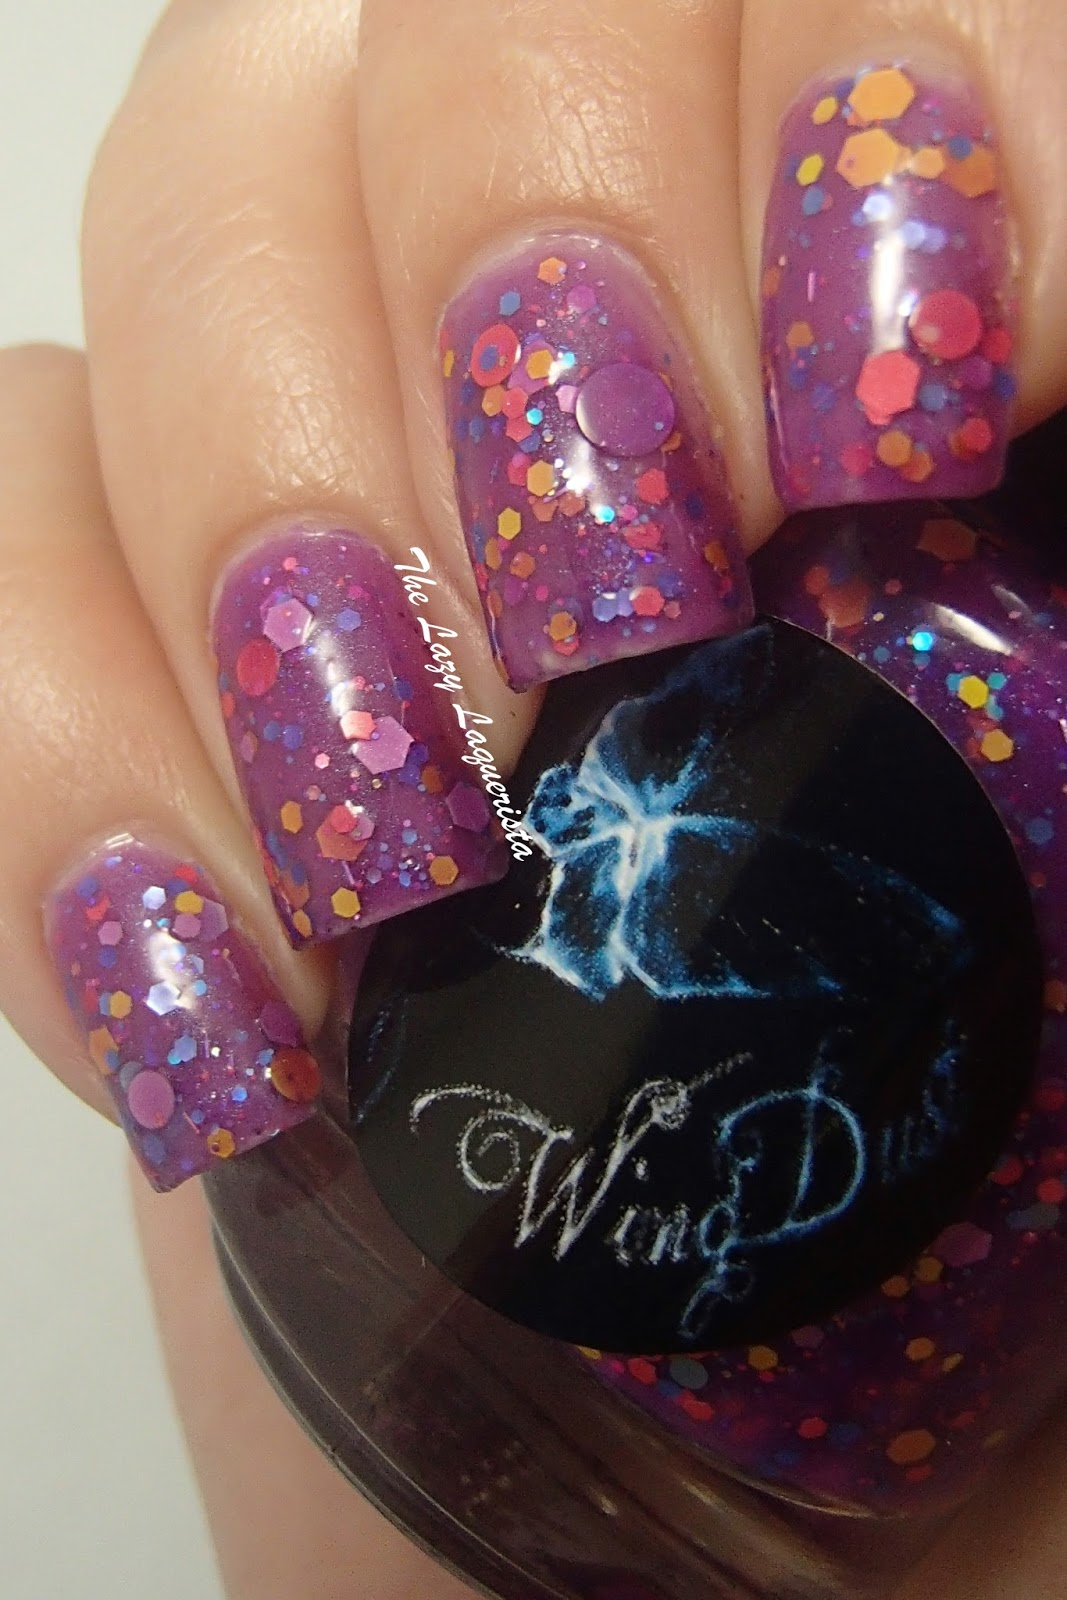 WingDust Collections